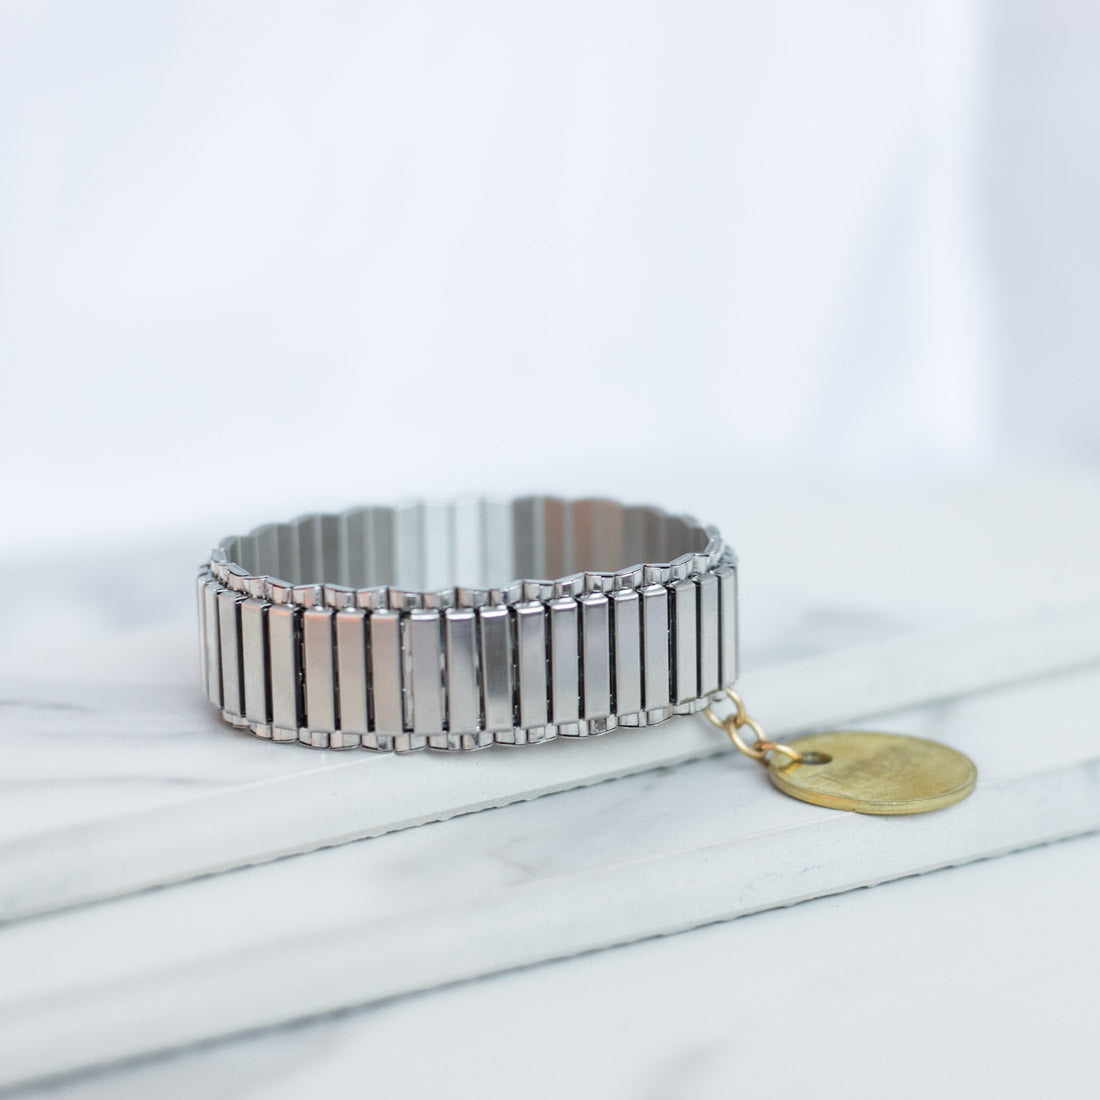 WATCHBAND Bracelet - Twisted Silver Jewelry